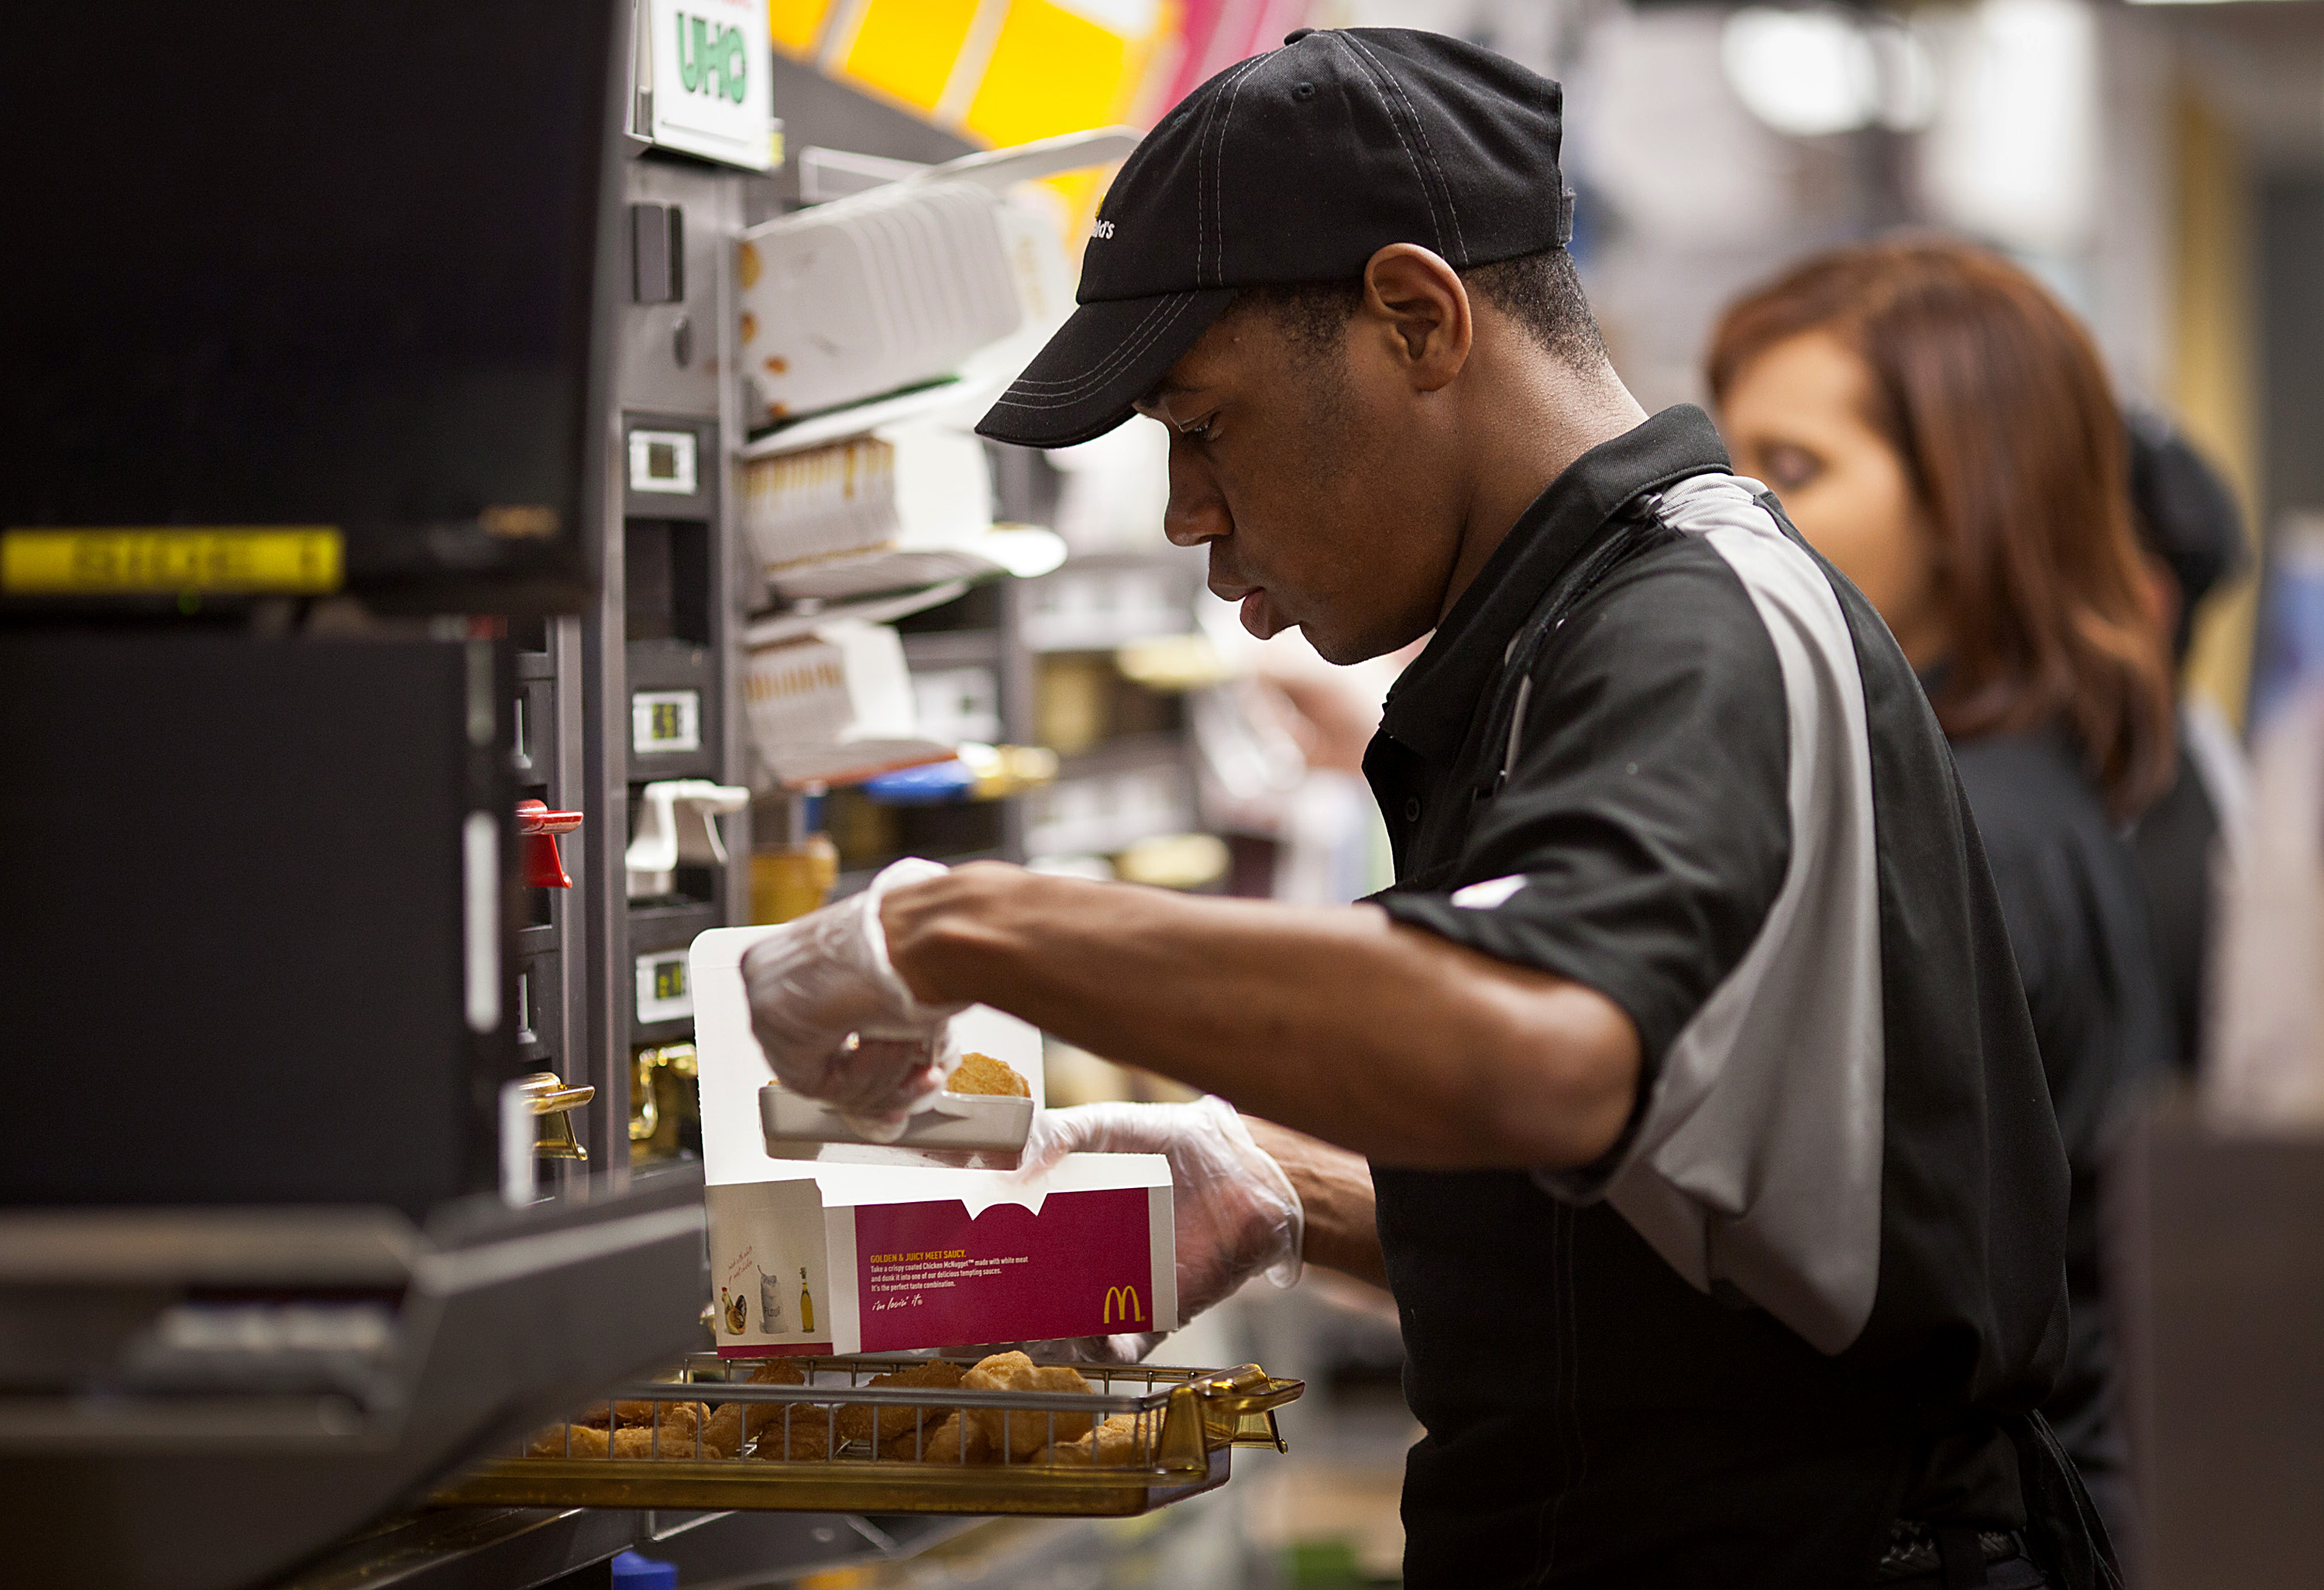 worker making McNuggets